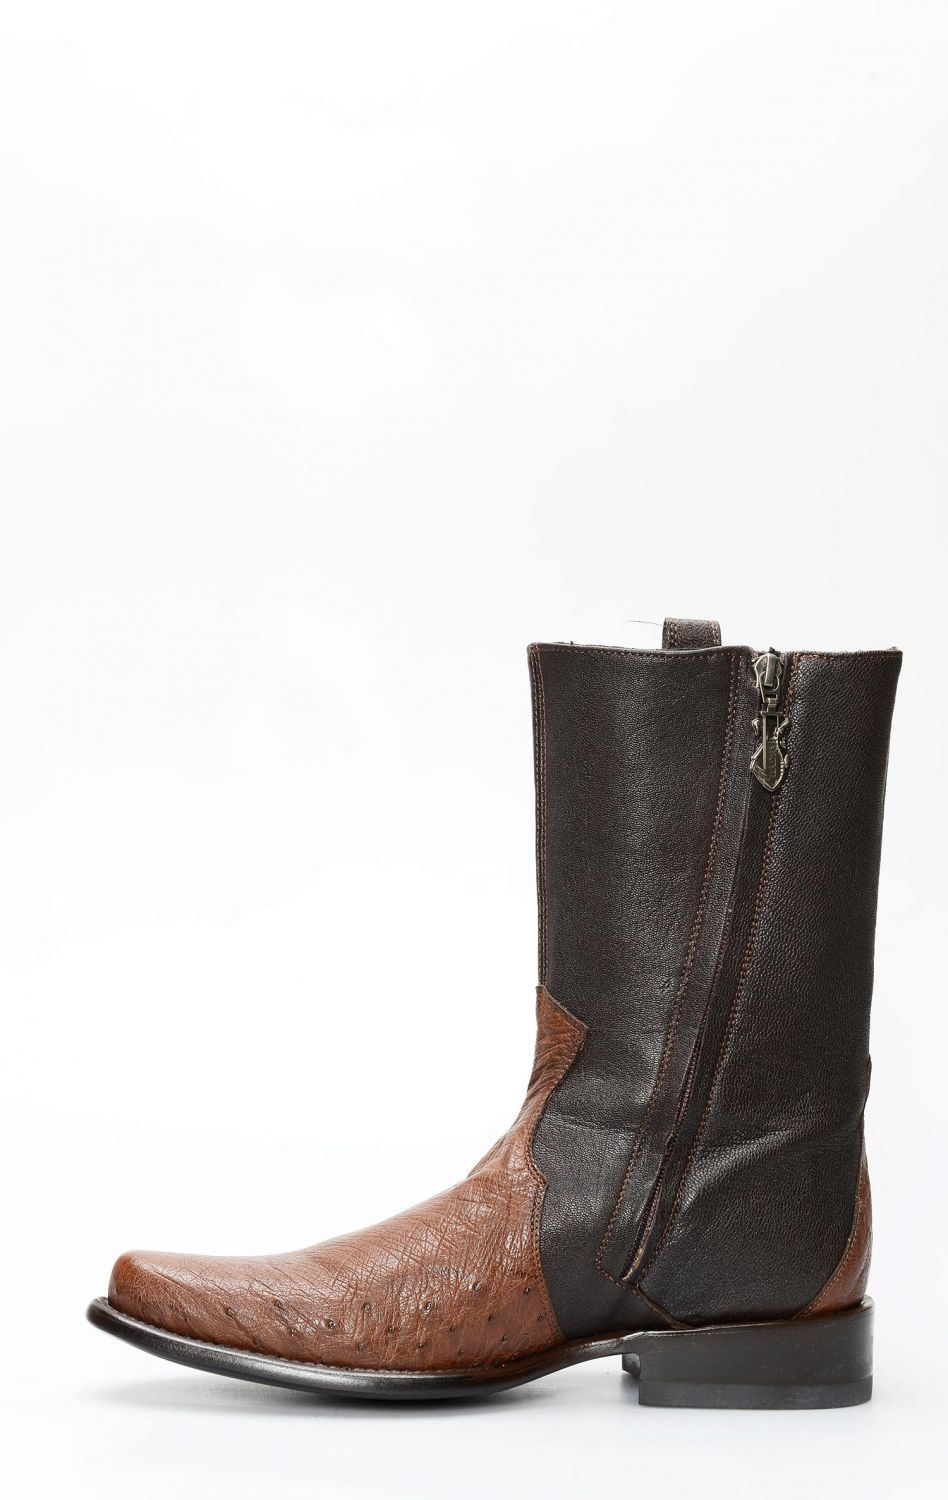 e24cec8b94b Cuadra brown ostrich belly boots with toe on shoulder | CLAVBYS4AVBYKT